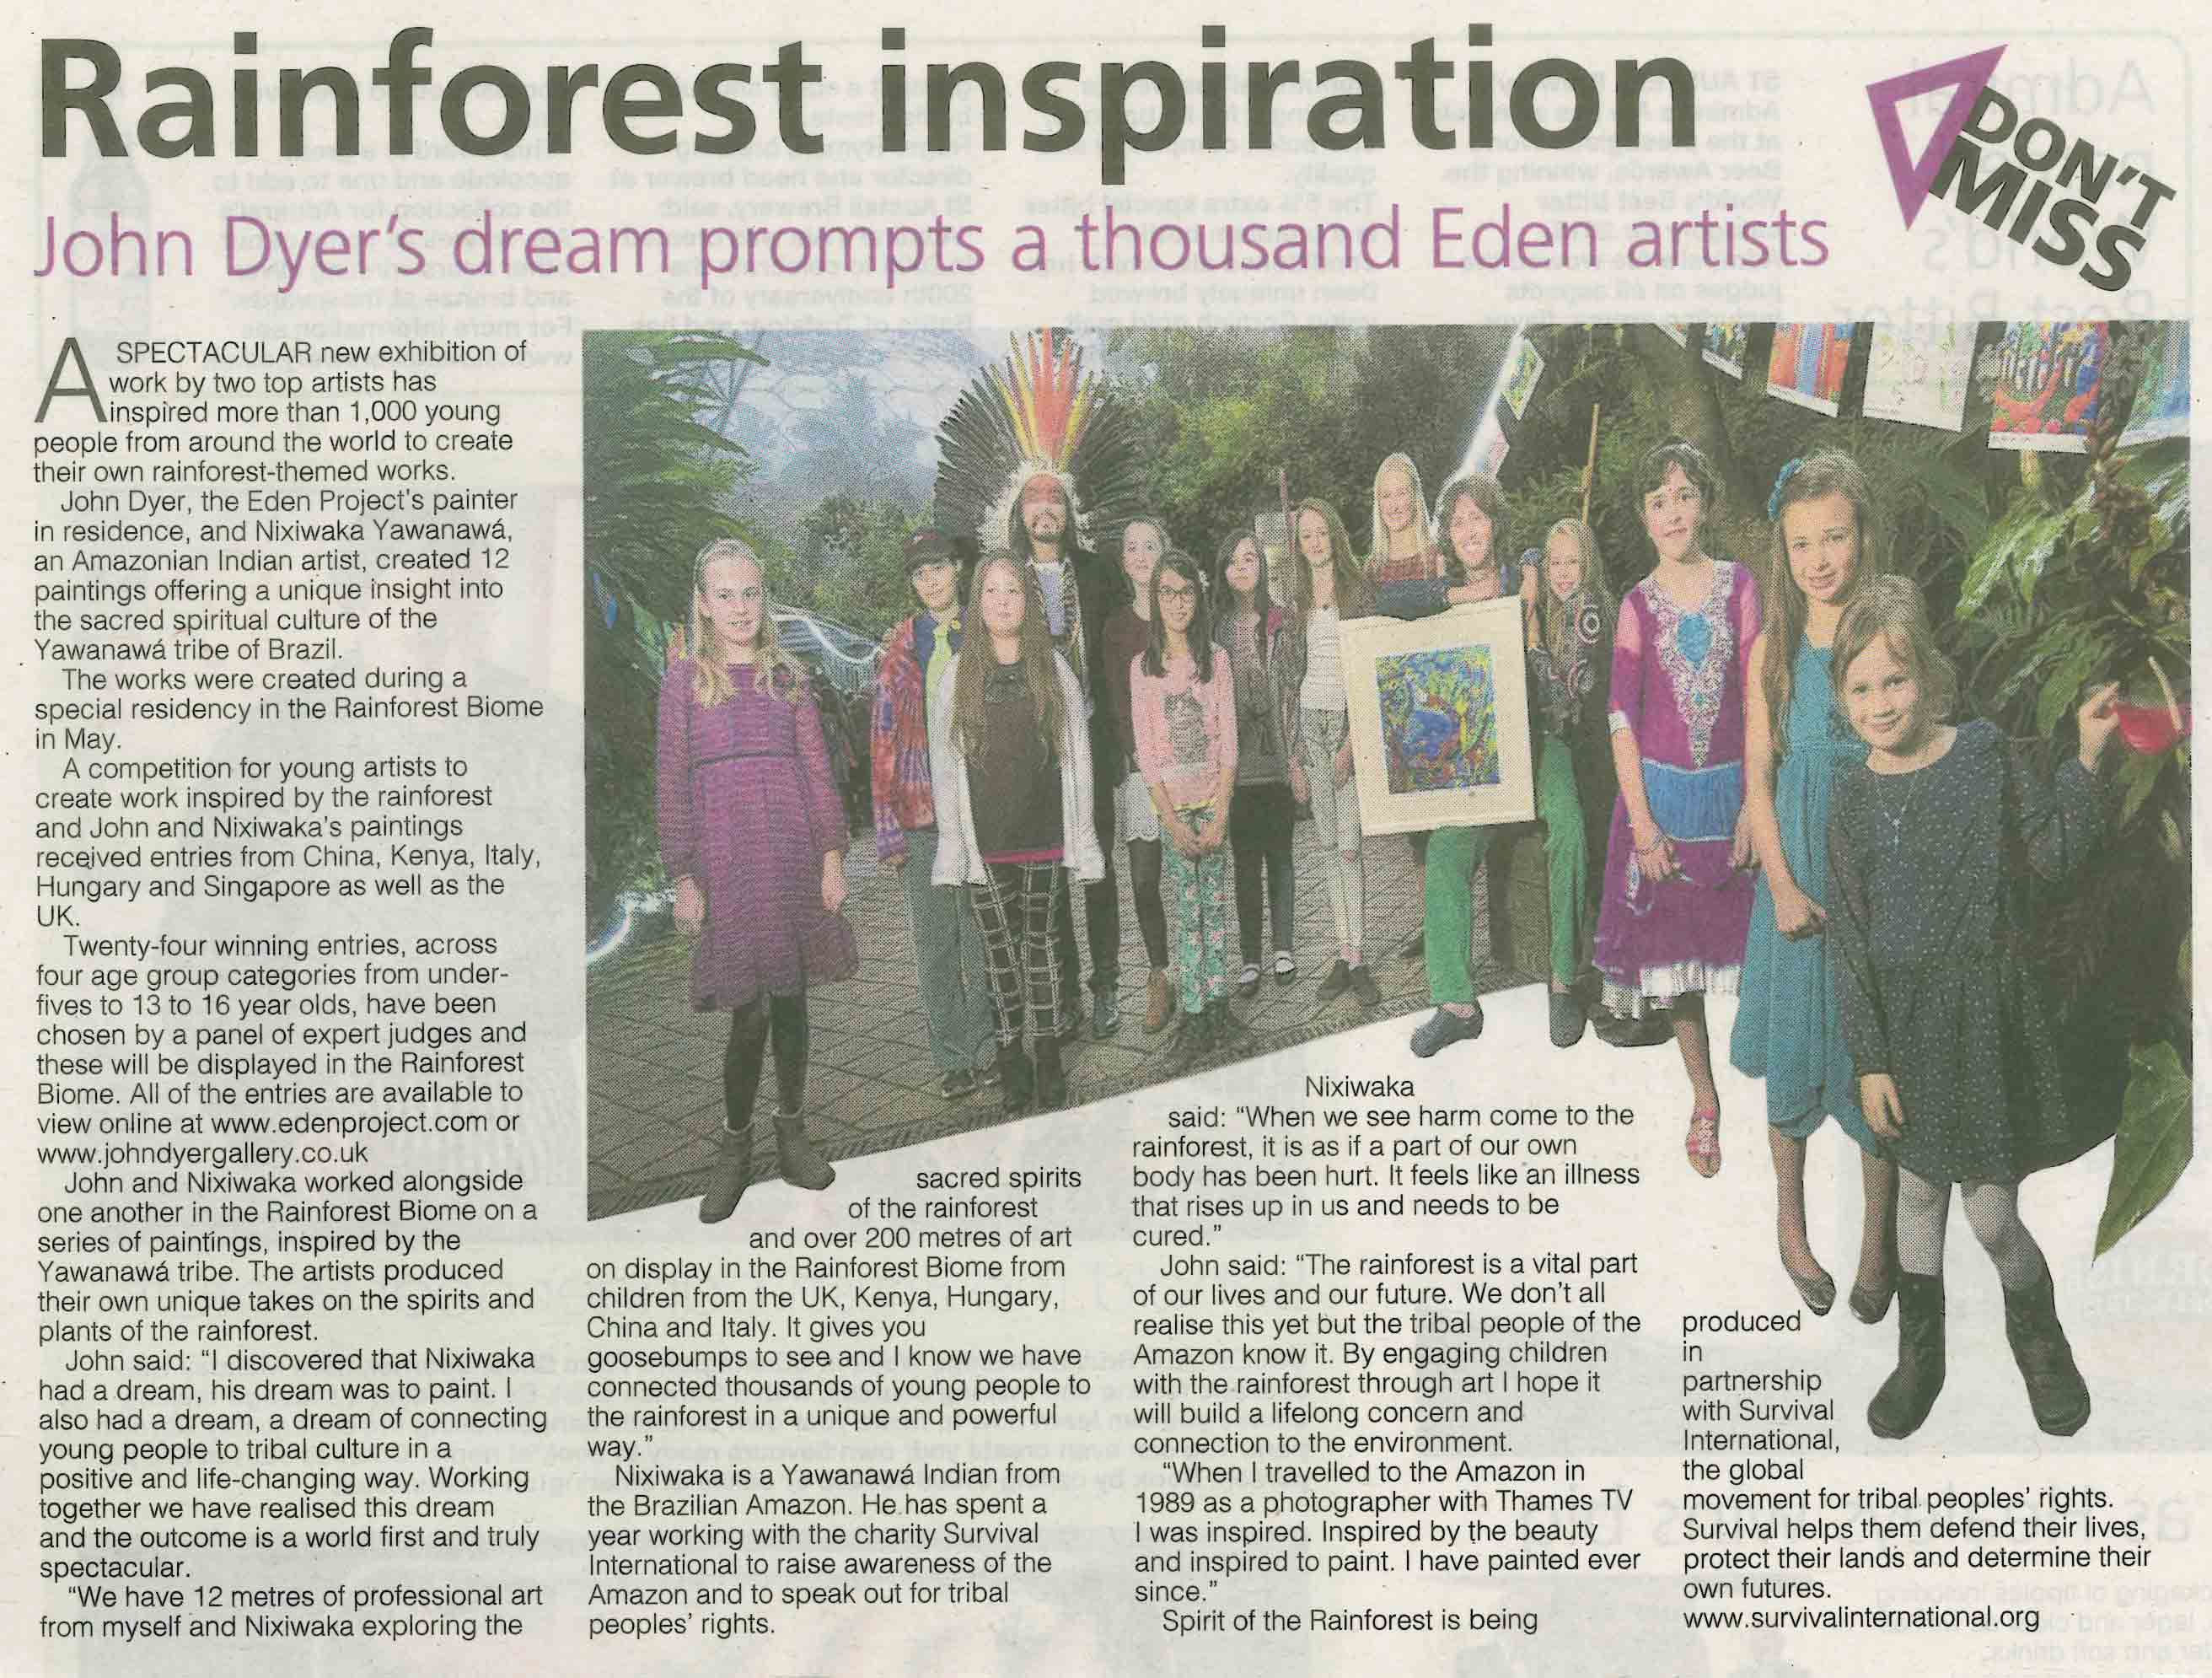 John Dyer at the Eden Project featured in the West Briton Newspaper